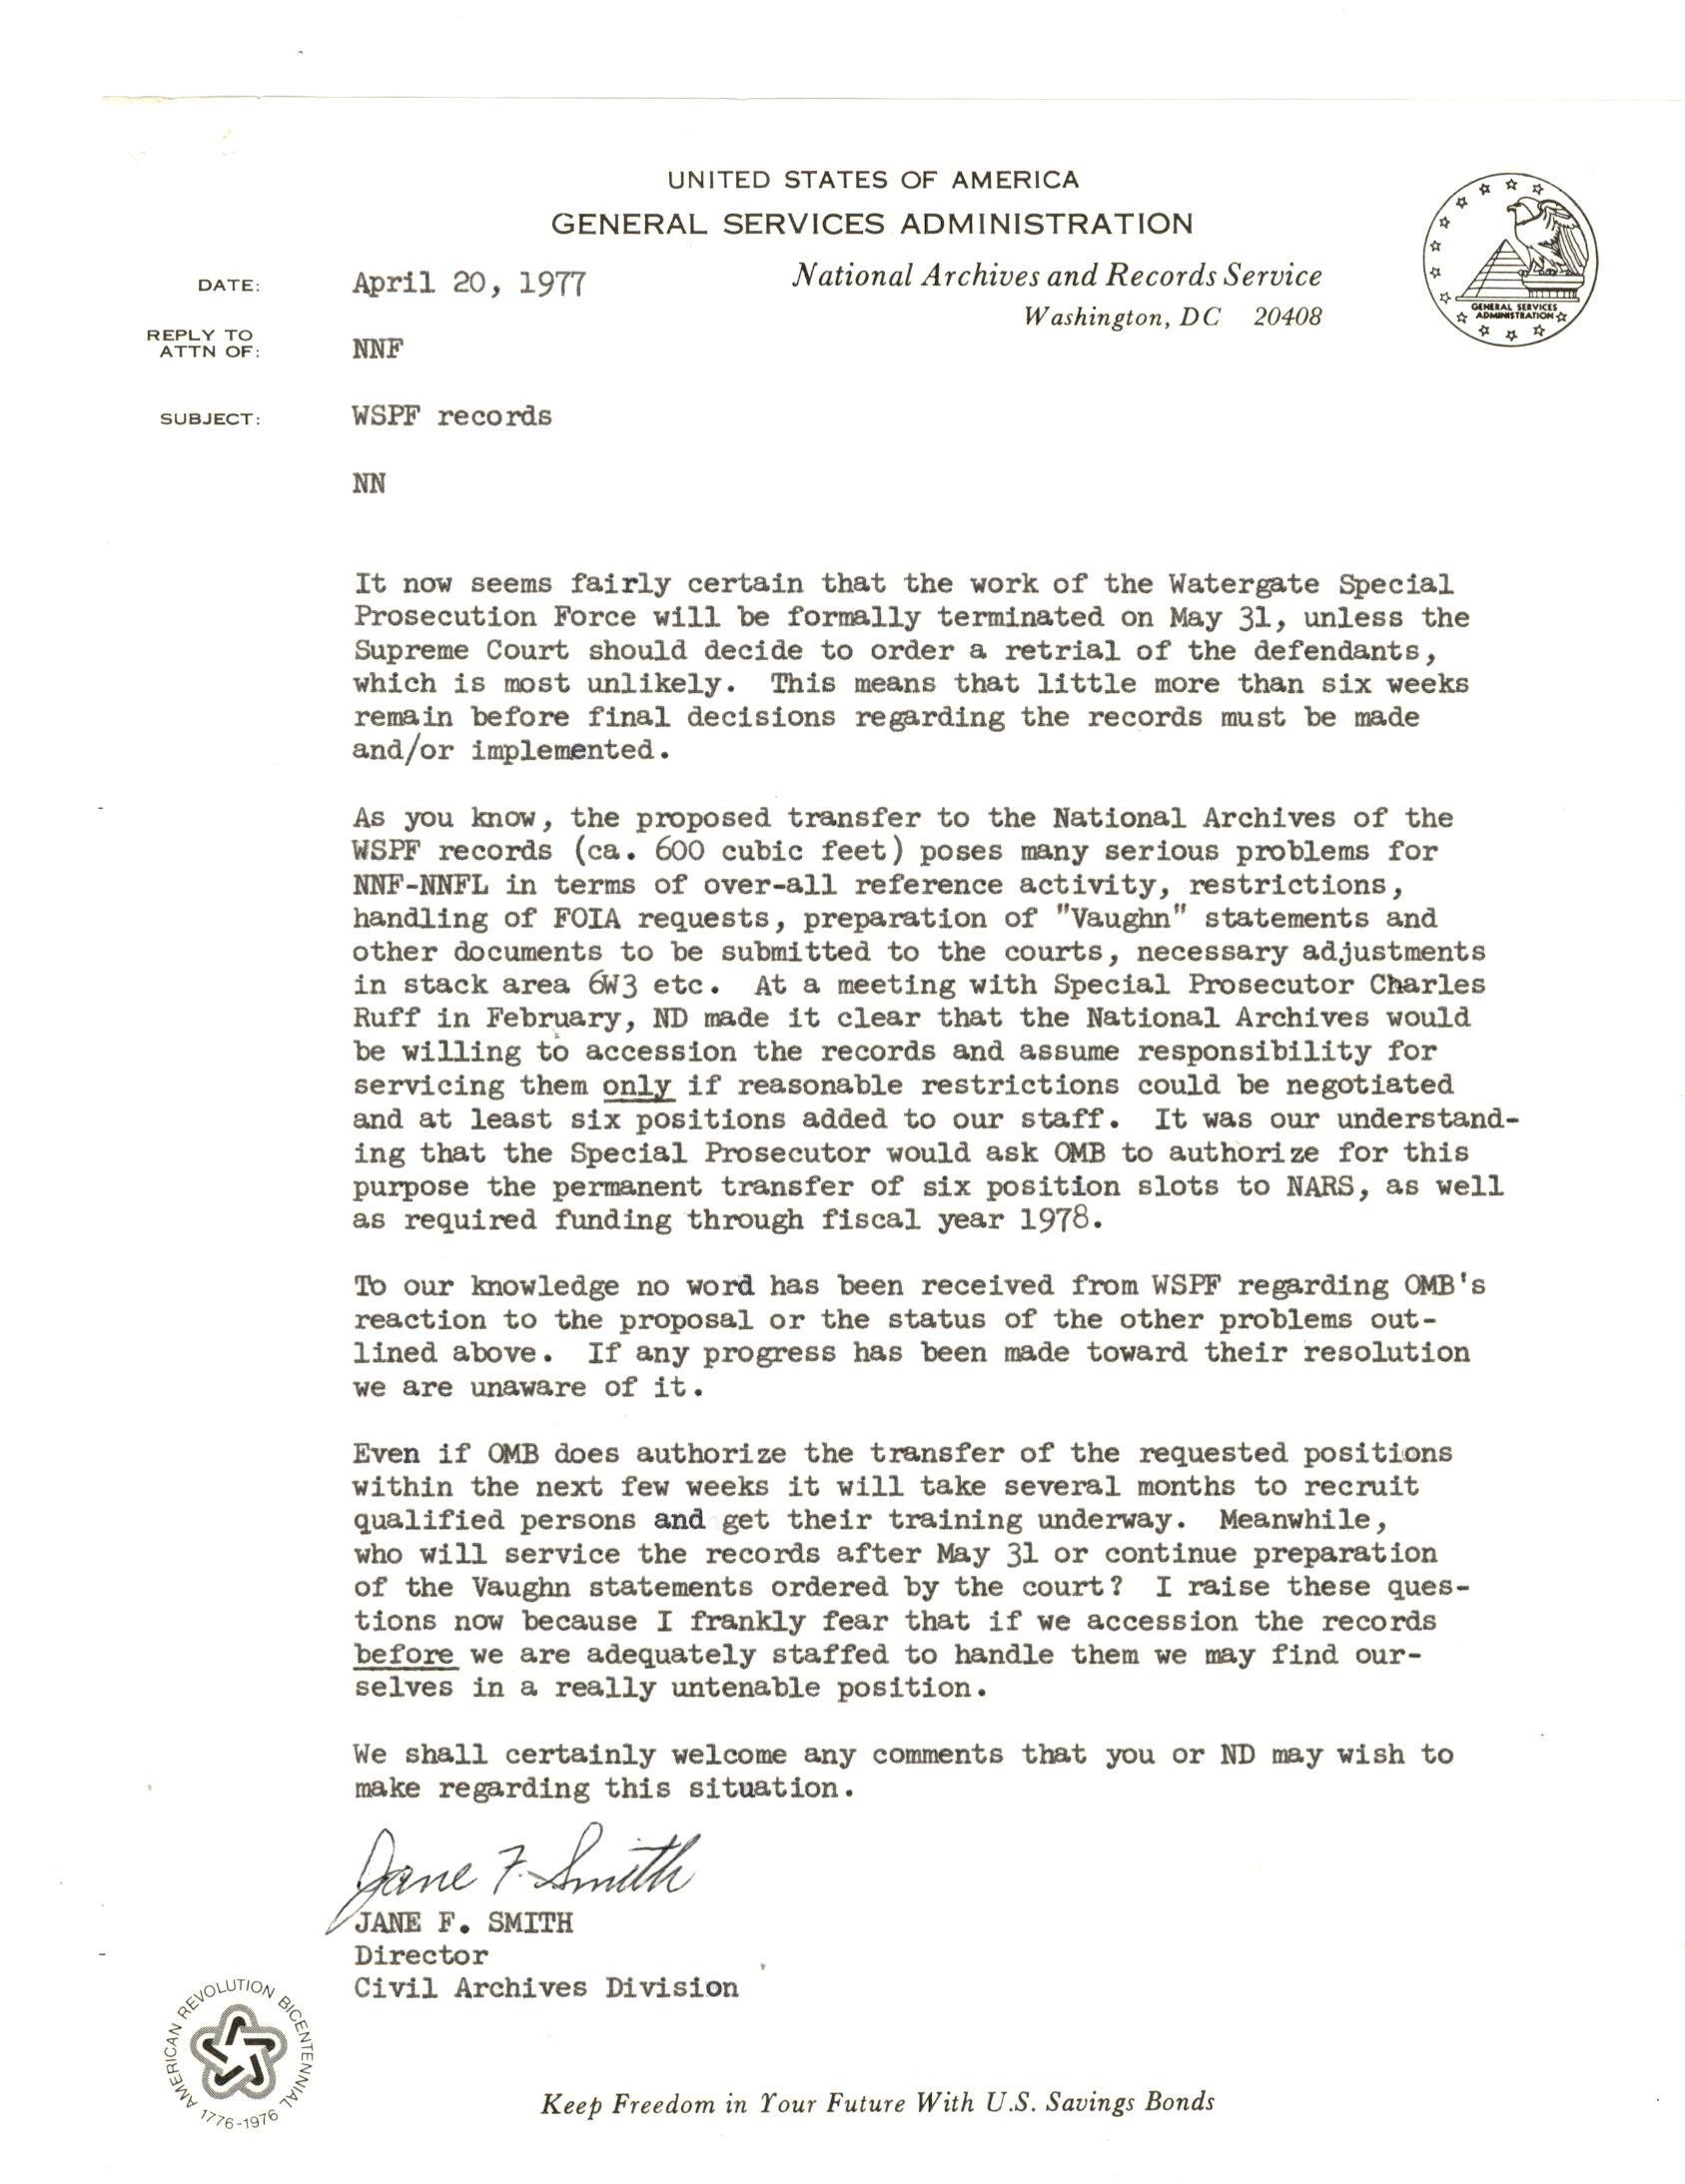 Memo from Jane Smith, Director of the Civil Archives Division, to the Assistant Archivist, 1977